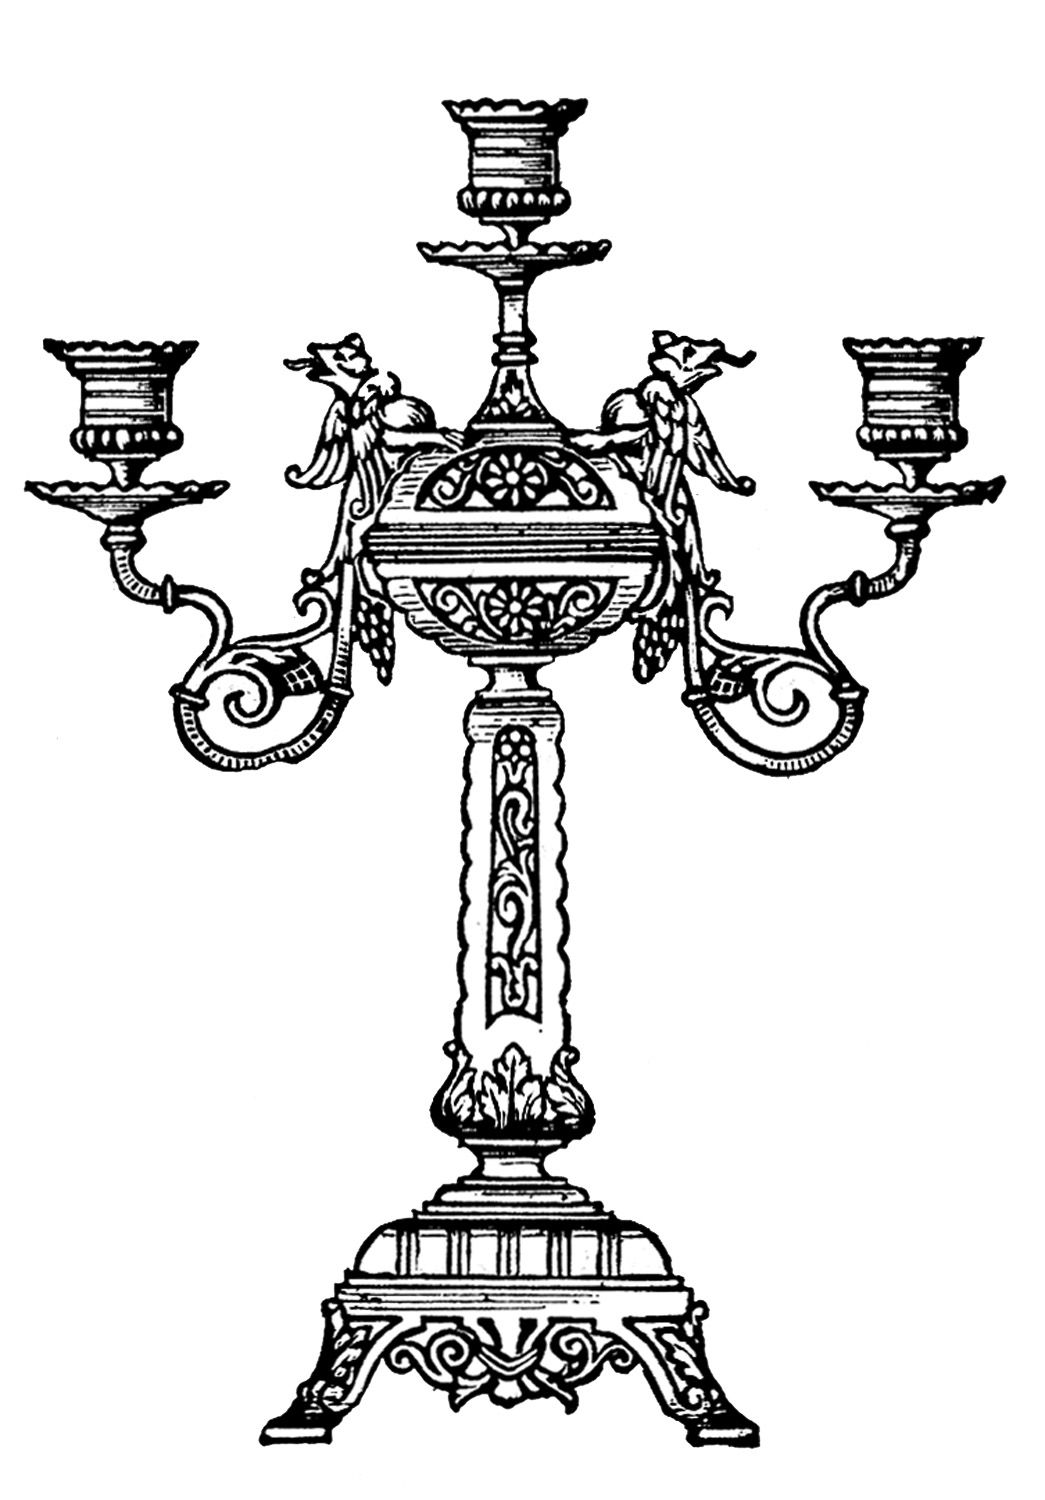 Vintage Clip Art - Ornate Candelabra | Graphics, Graphics fairy ...